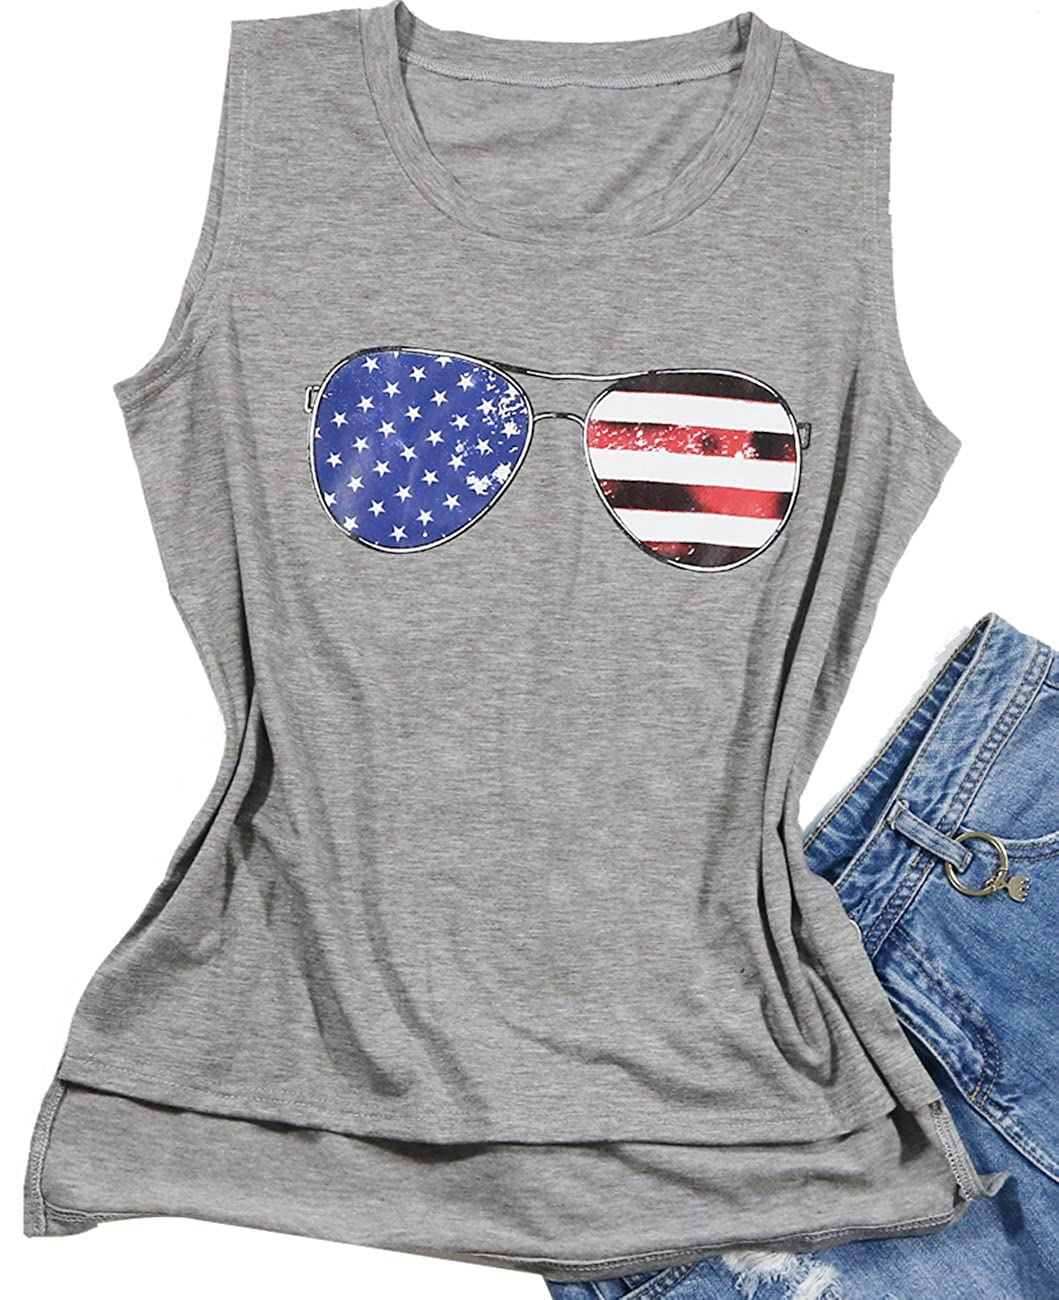 bbeb3869f24 American Flag Sunglasses Funny Graphic Tank Top Women Ladies USA Flag Tank  Top American Flag Stripe Printed Cute Tops T-Shirt.